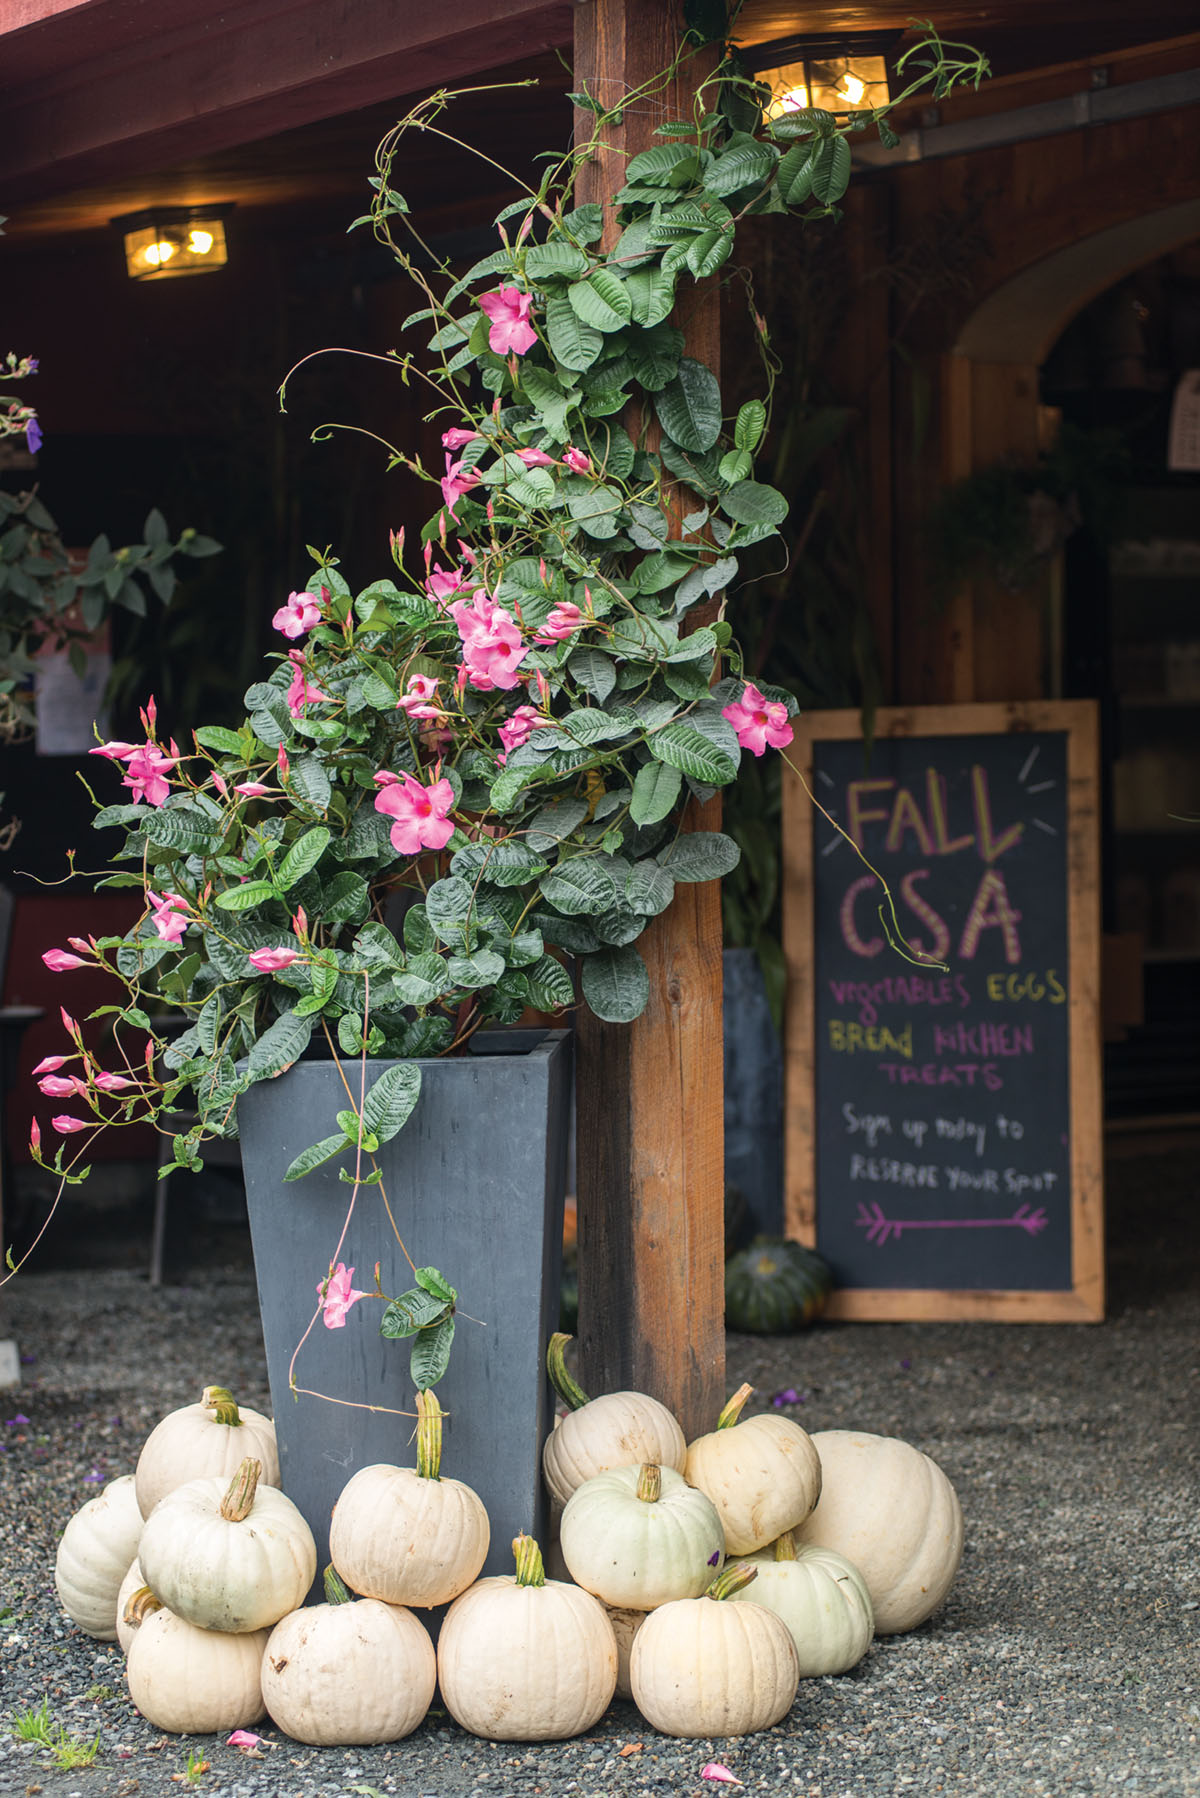 Vignette of cream-colored pumpkins and a container featuring a pink flowering vine. A chalk sign in the background advertises Edgewater Farm's fall CSA, listing vegetables, eggs, bread, and kitchen treats